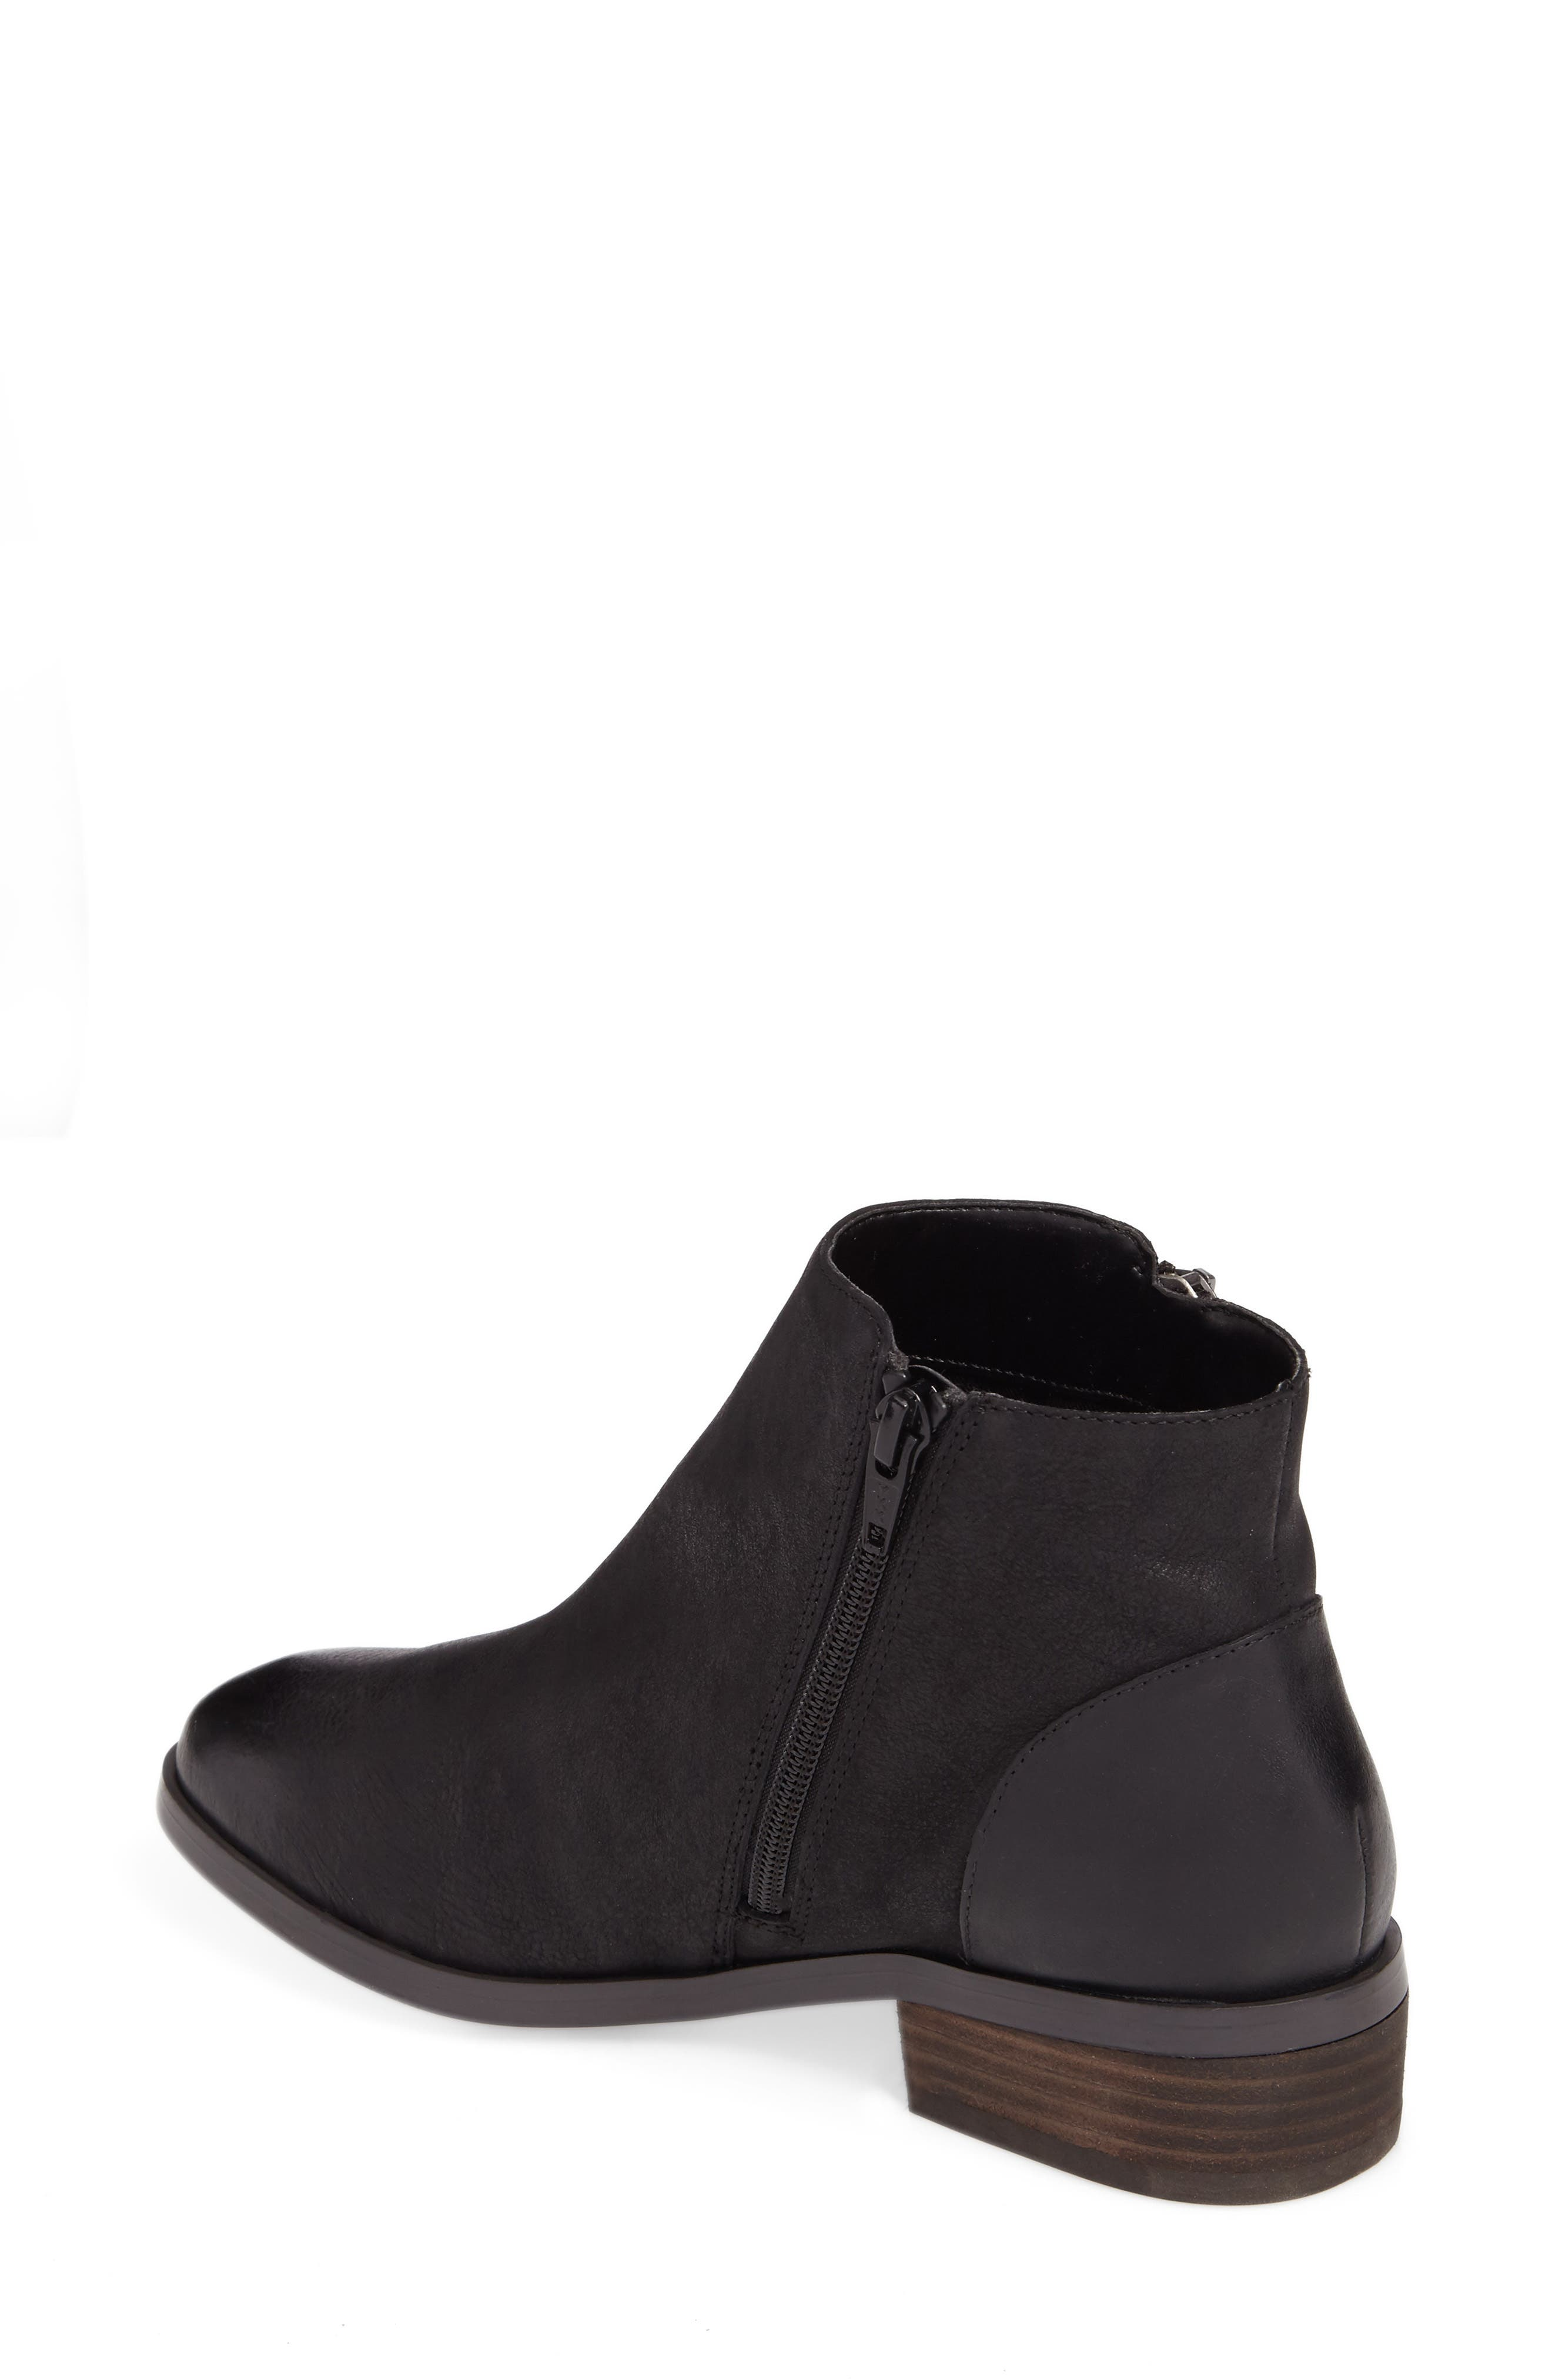 Abbott Bootie,                             Alternate thumbnail 2, color,                             BLACK LEATHER